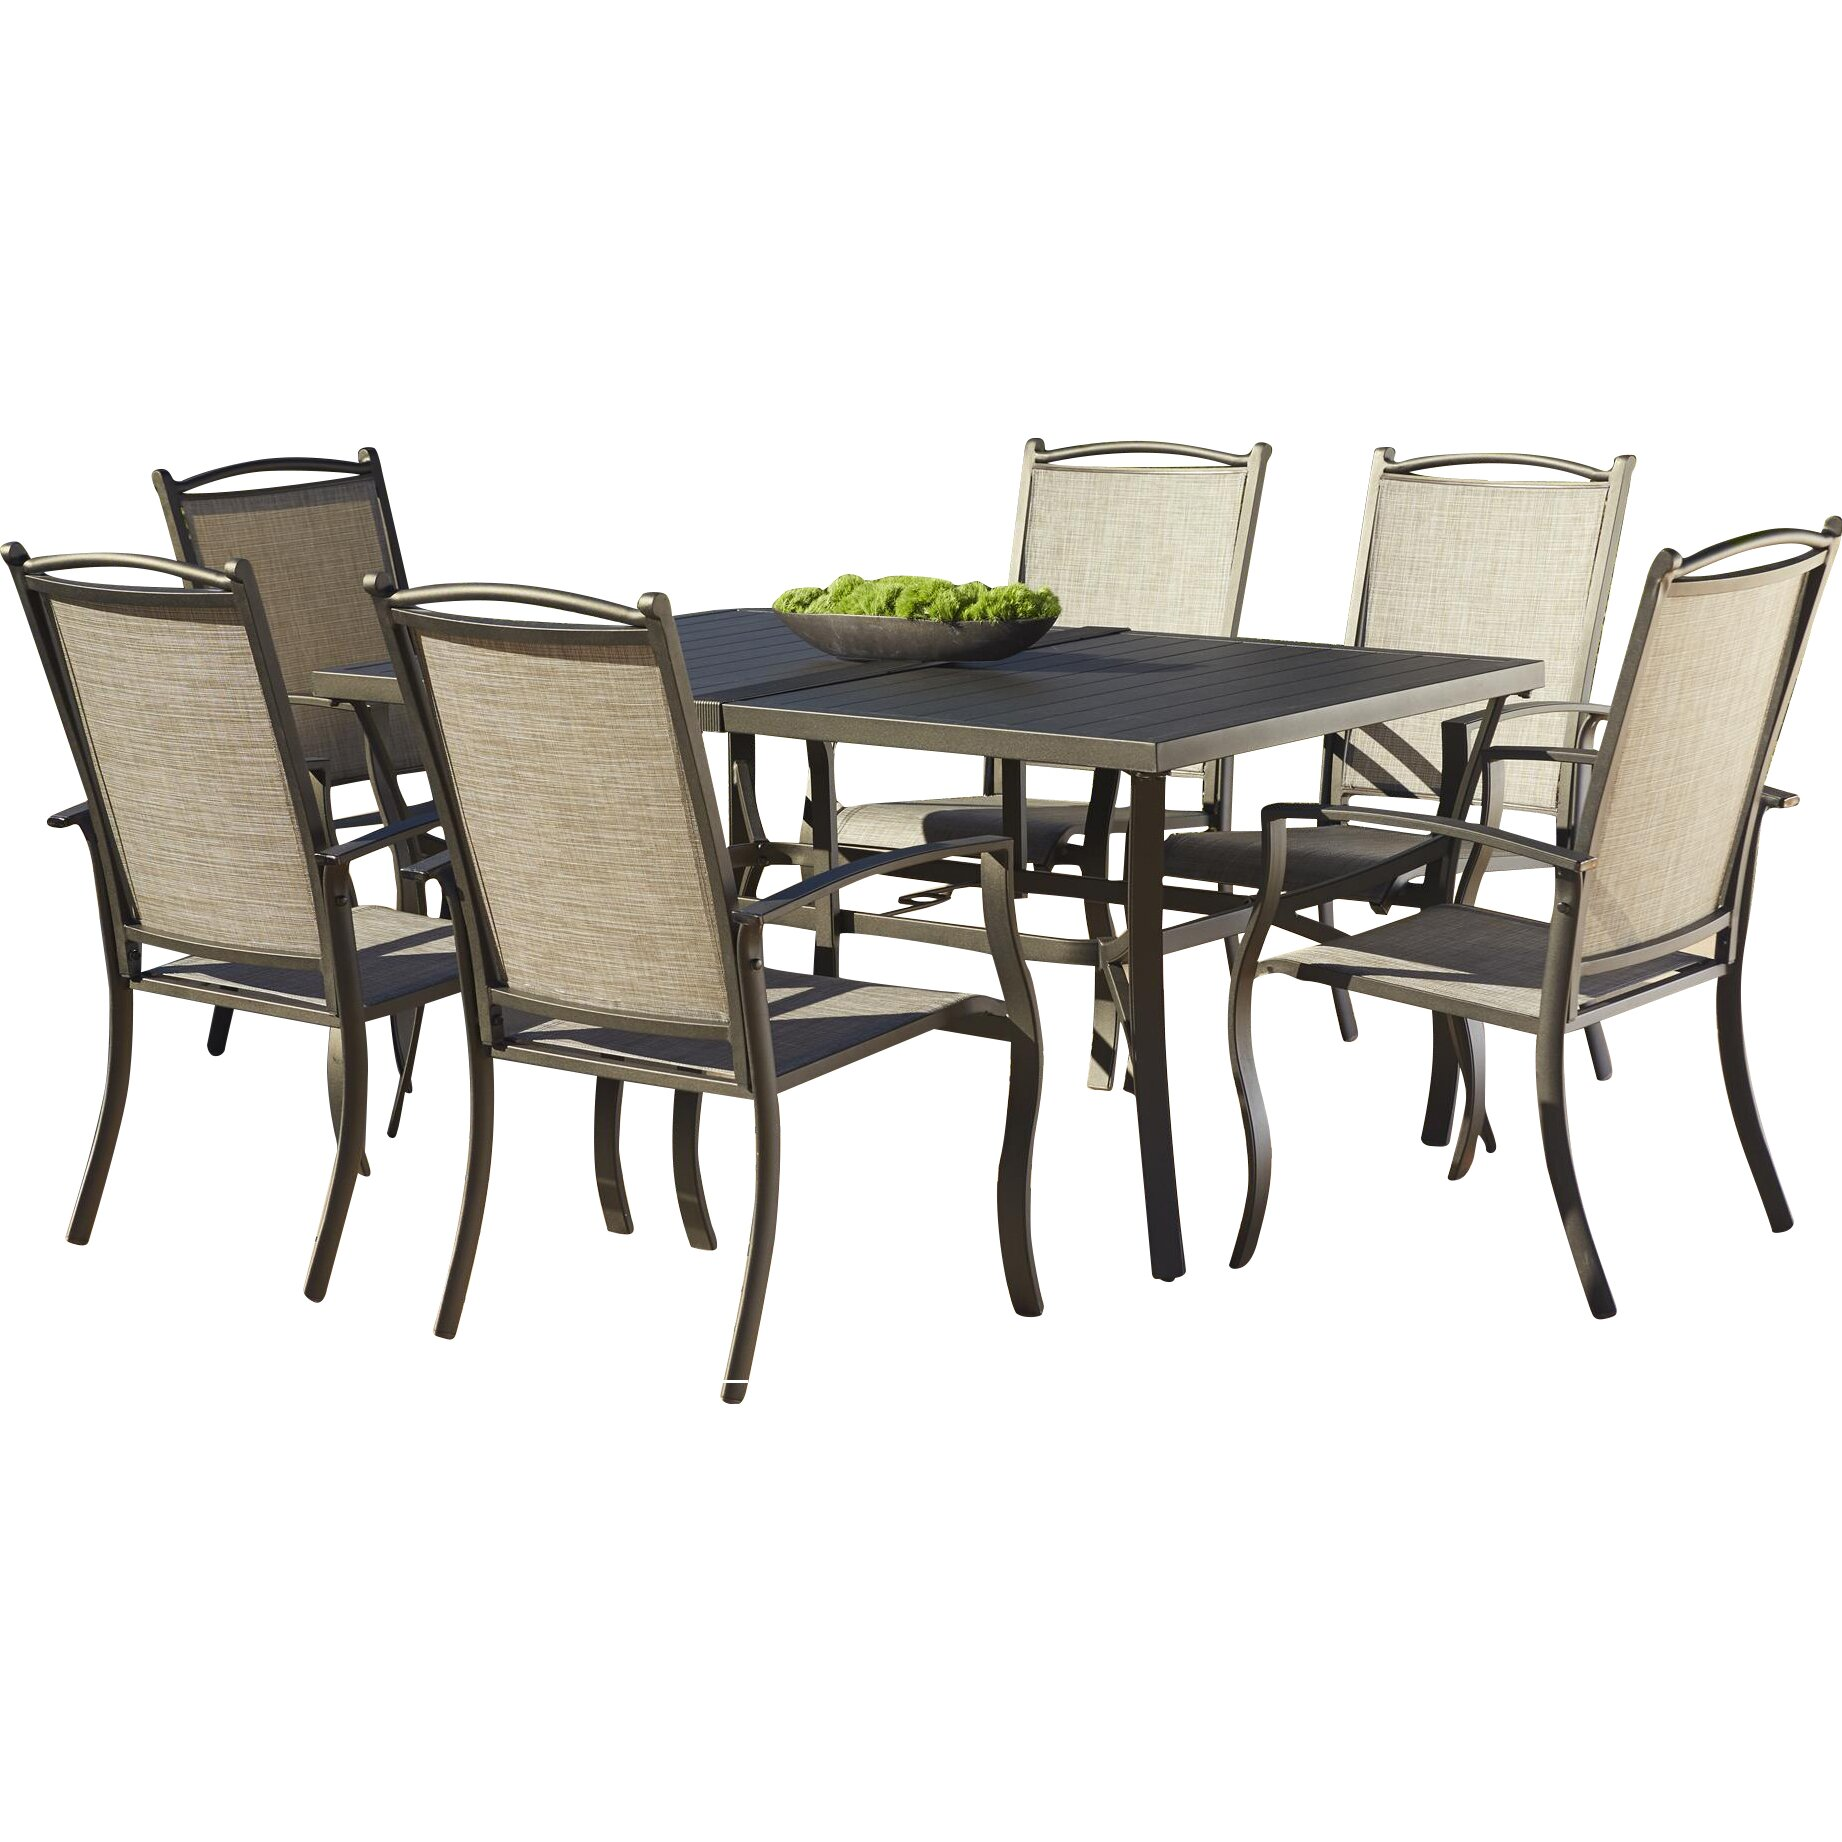 Three posts pavilion 7 piece dining set reviews wayfair for 7 piece dining set